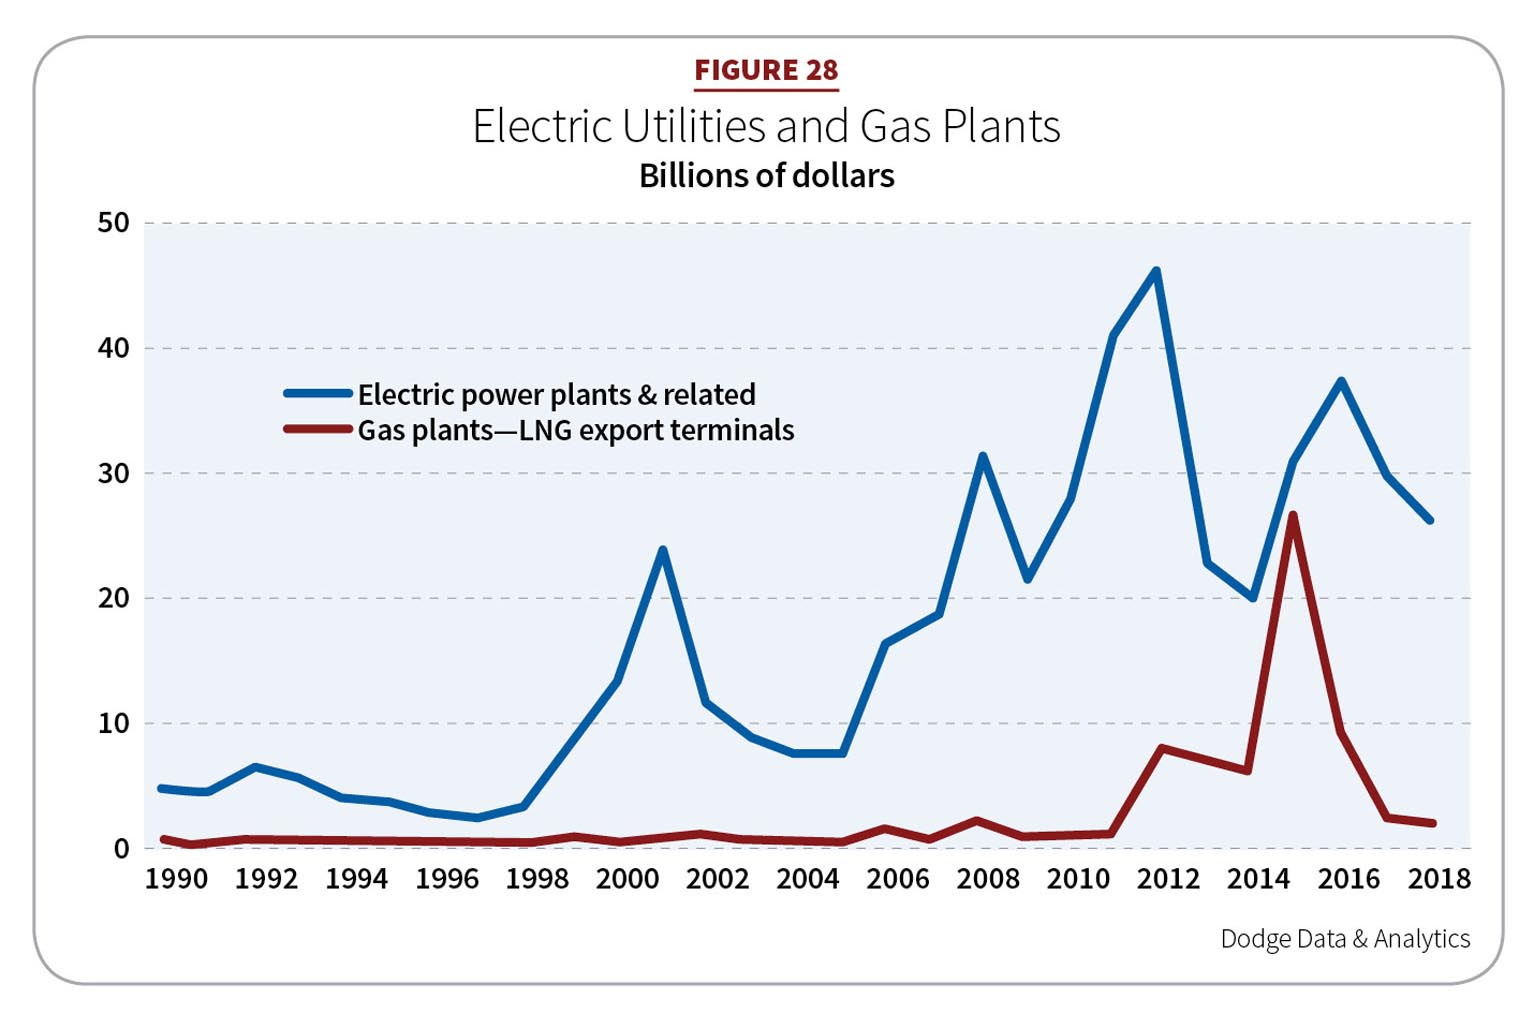 Figure 28: Electric Utilities and Gas Plants